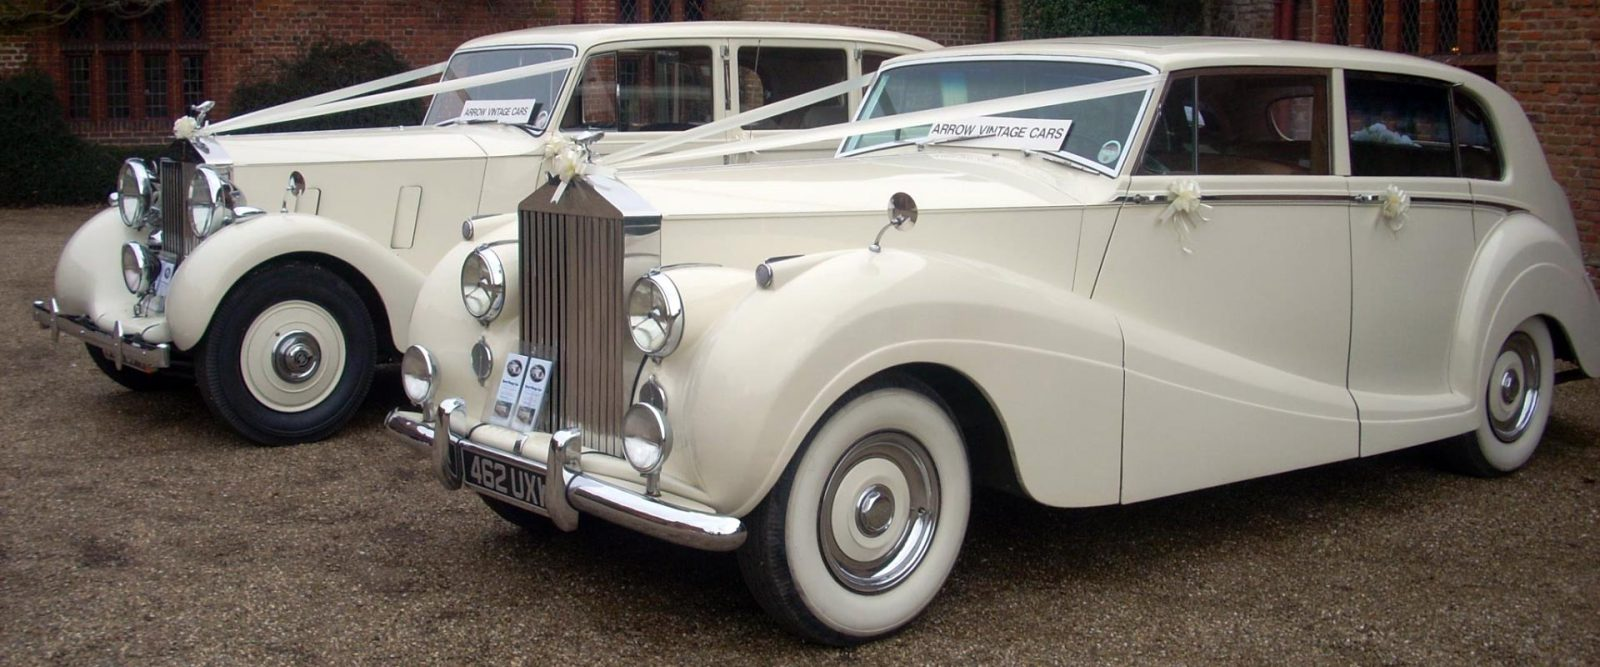 Wedding Cars Essex Classic Vintage Weddings Car Hire In